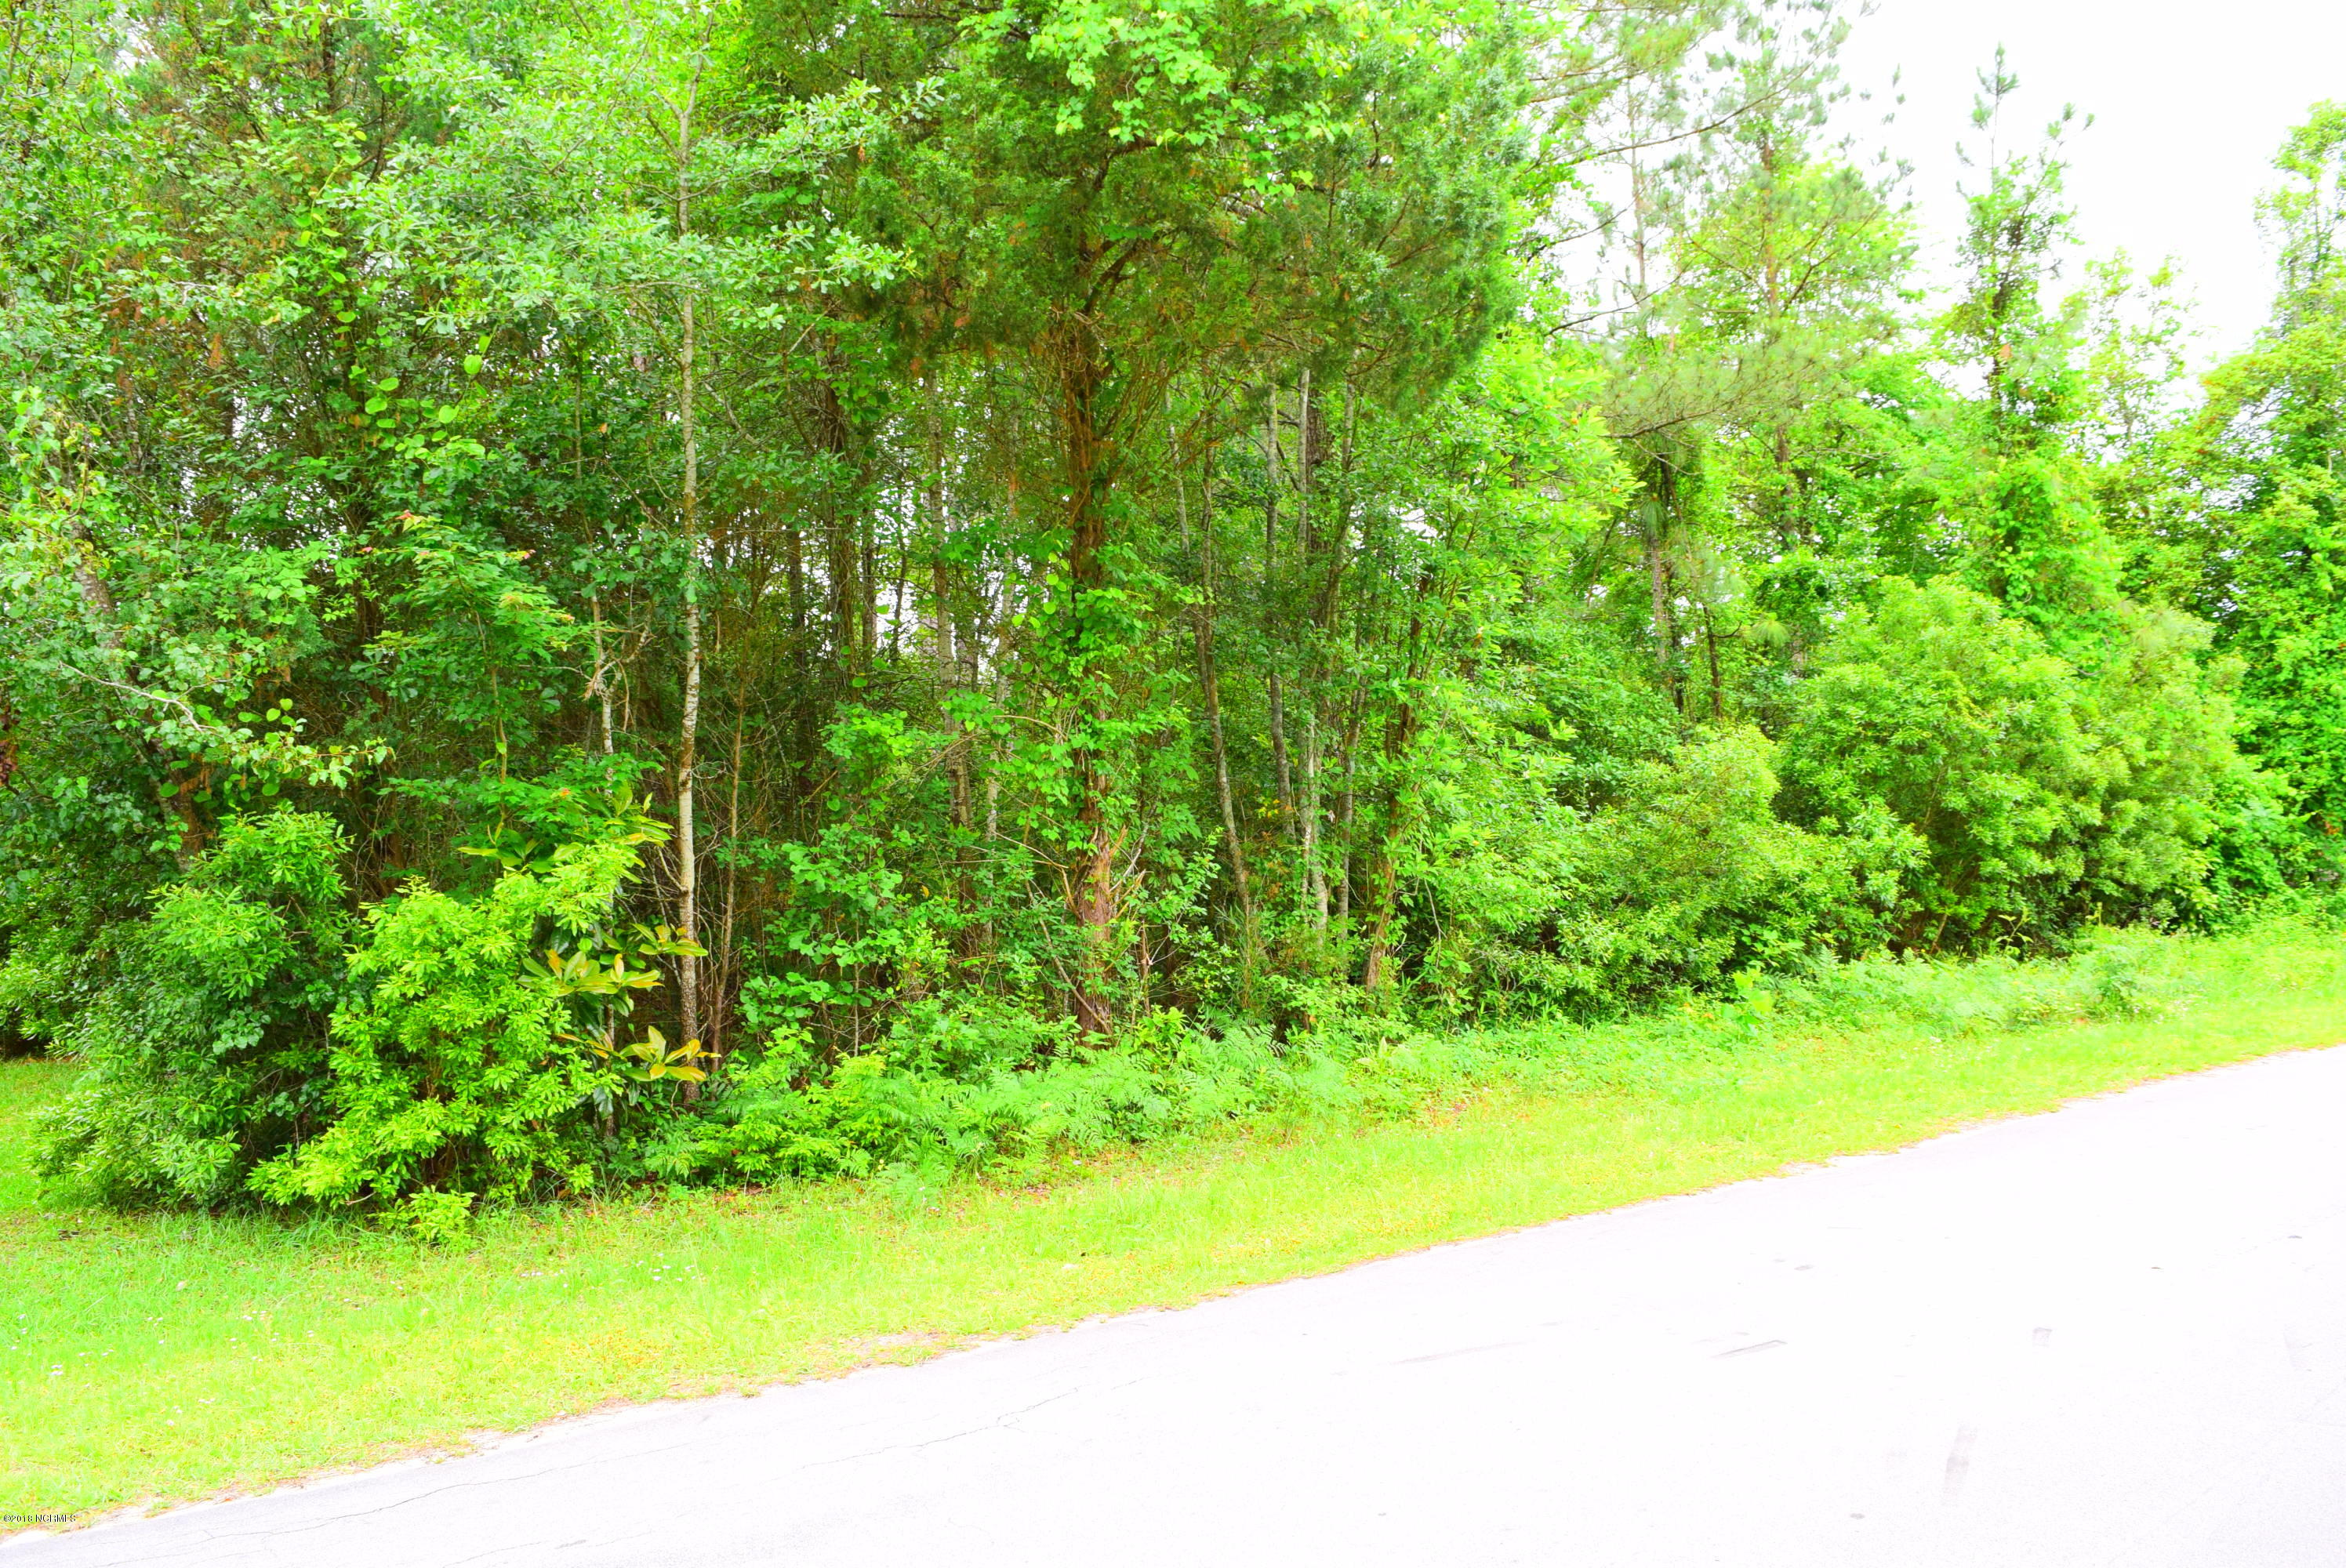 000 Sandy Point Road, New Bern, North Carolina 28560, ,Wooded,For sale,Sandy Point,100170777